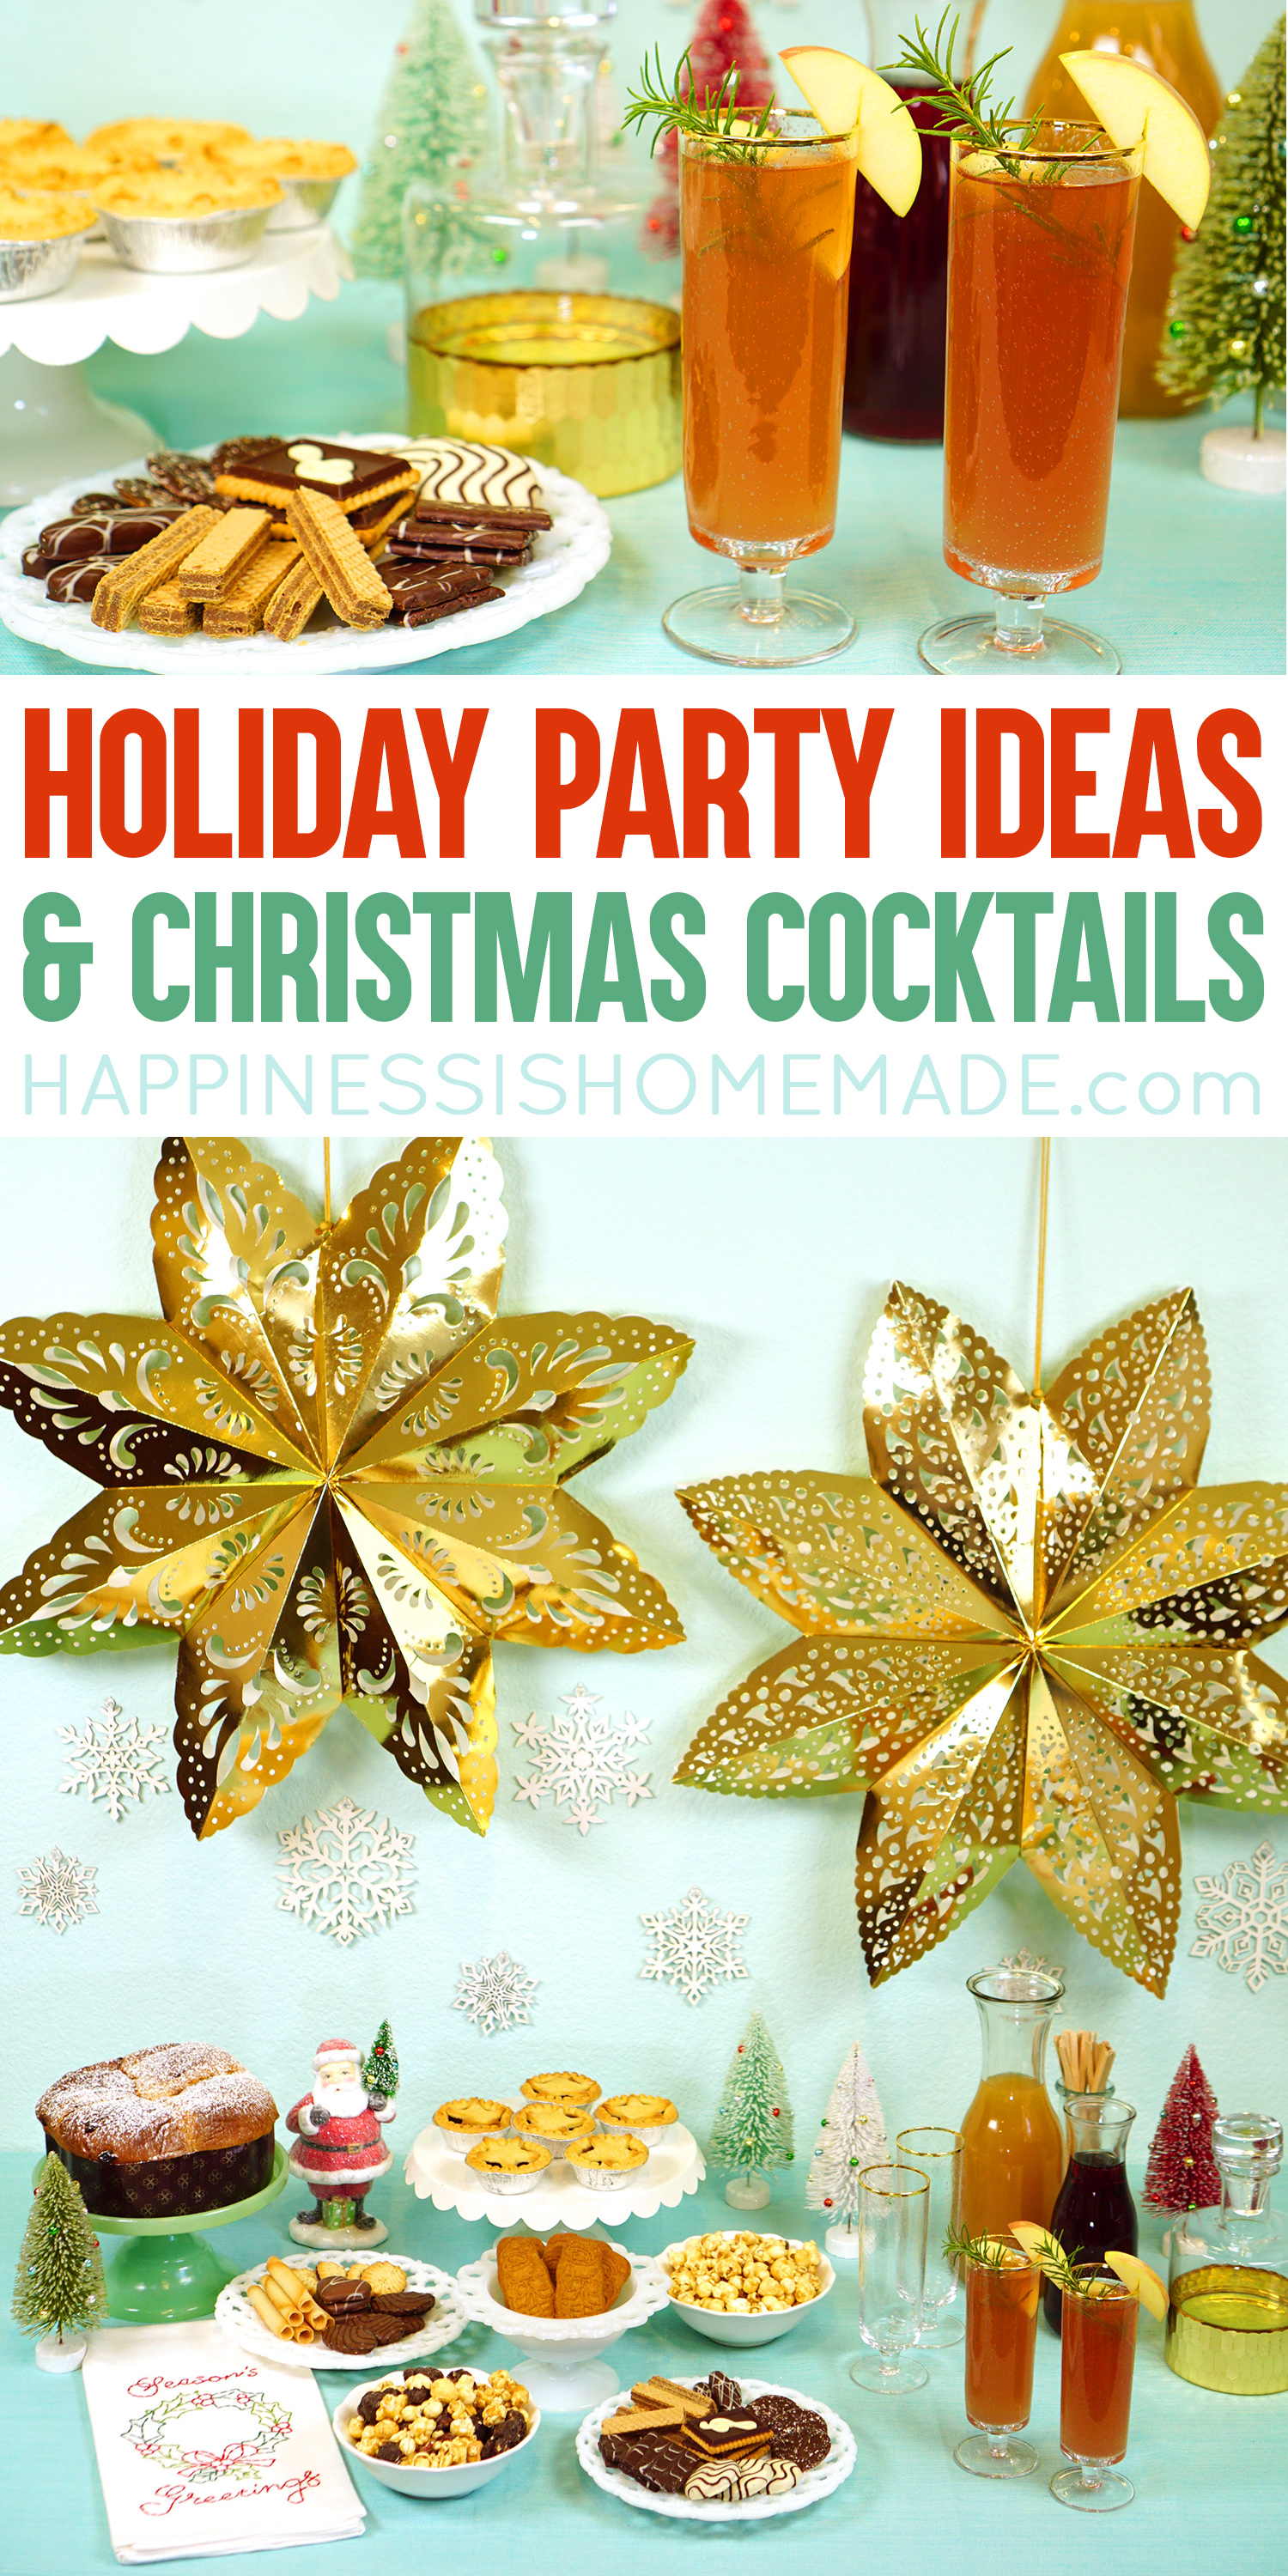 Holiday Party Ideas & Christmas Cocktail Recipes - Countdown to Christmas in style with a fun holiday crafting party, Christmas cocktails, and Hallmark Channel Christmas movies, of course! via @hihomemadeblog